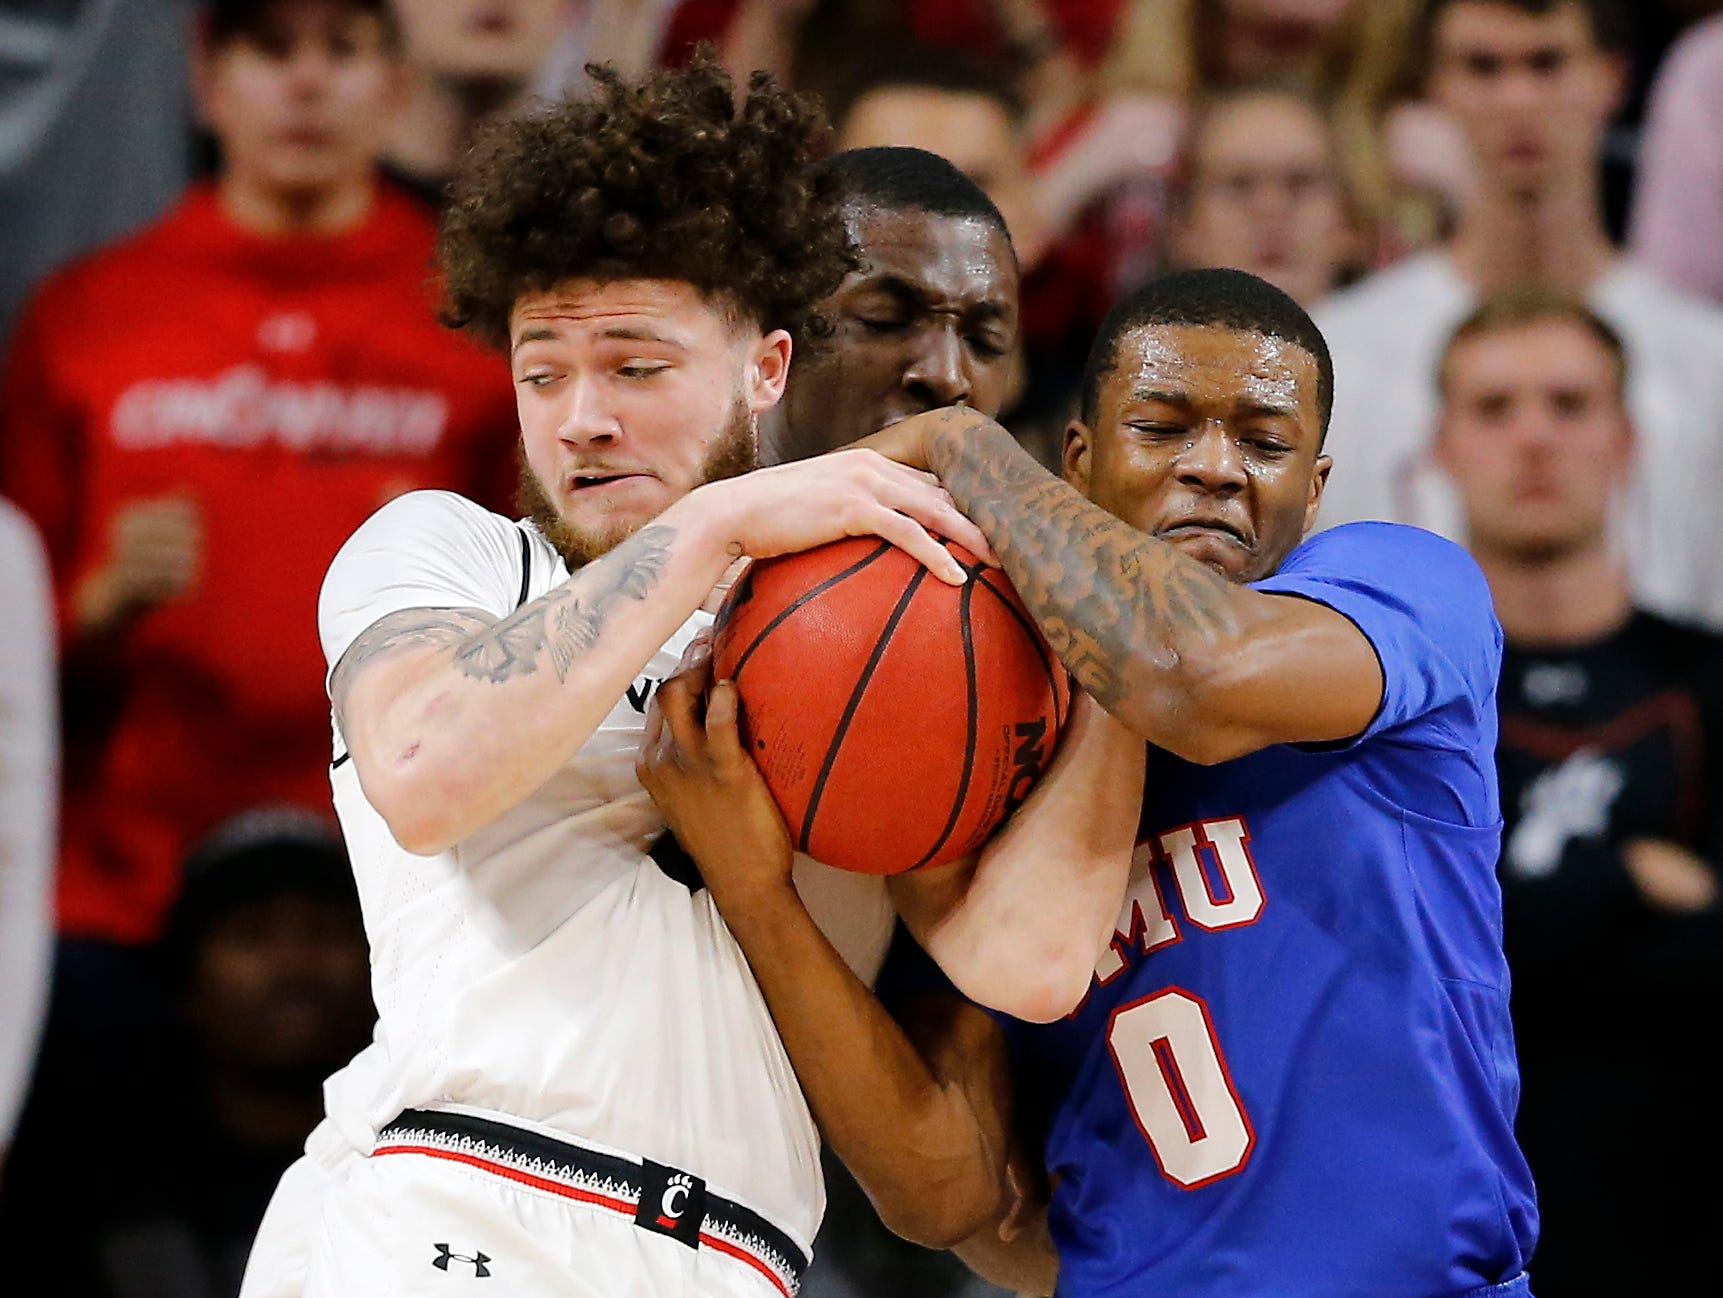 Cincinnati Bearcats guard Logan Johnson (0) wrestles with Southern Methodist Mustangs guard Jahmal McMurray (0) for the ball in the first half the the NCAA American Athletic Conference basketball game between the Cincinnati Bearcats and the Southern Methodist Mustangs at Fifth Third Arena in Cincinnati on Saturday, Feb. 2, 2019.